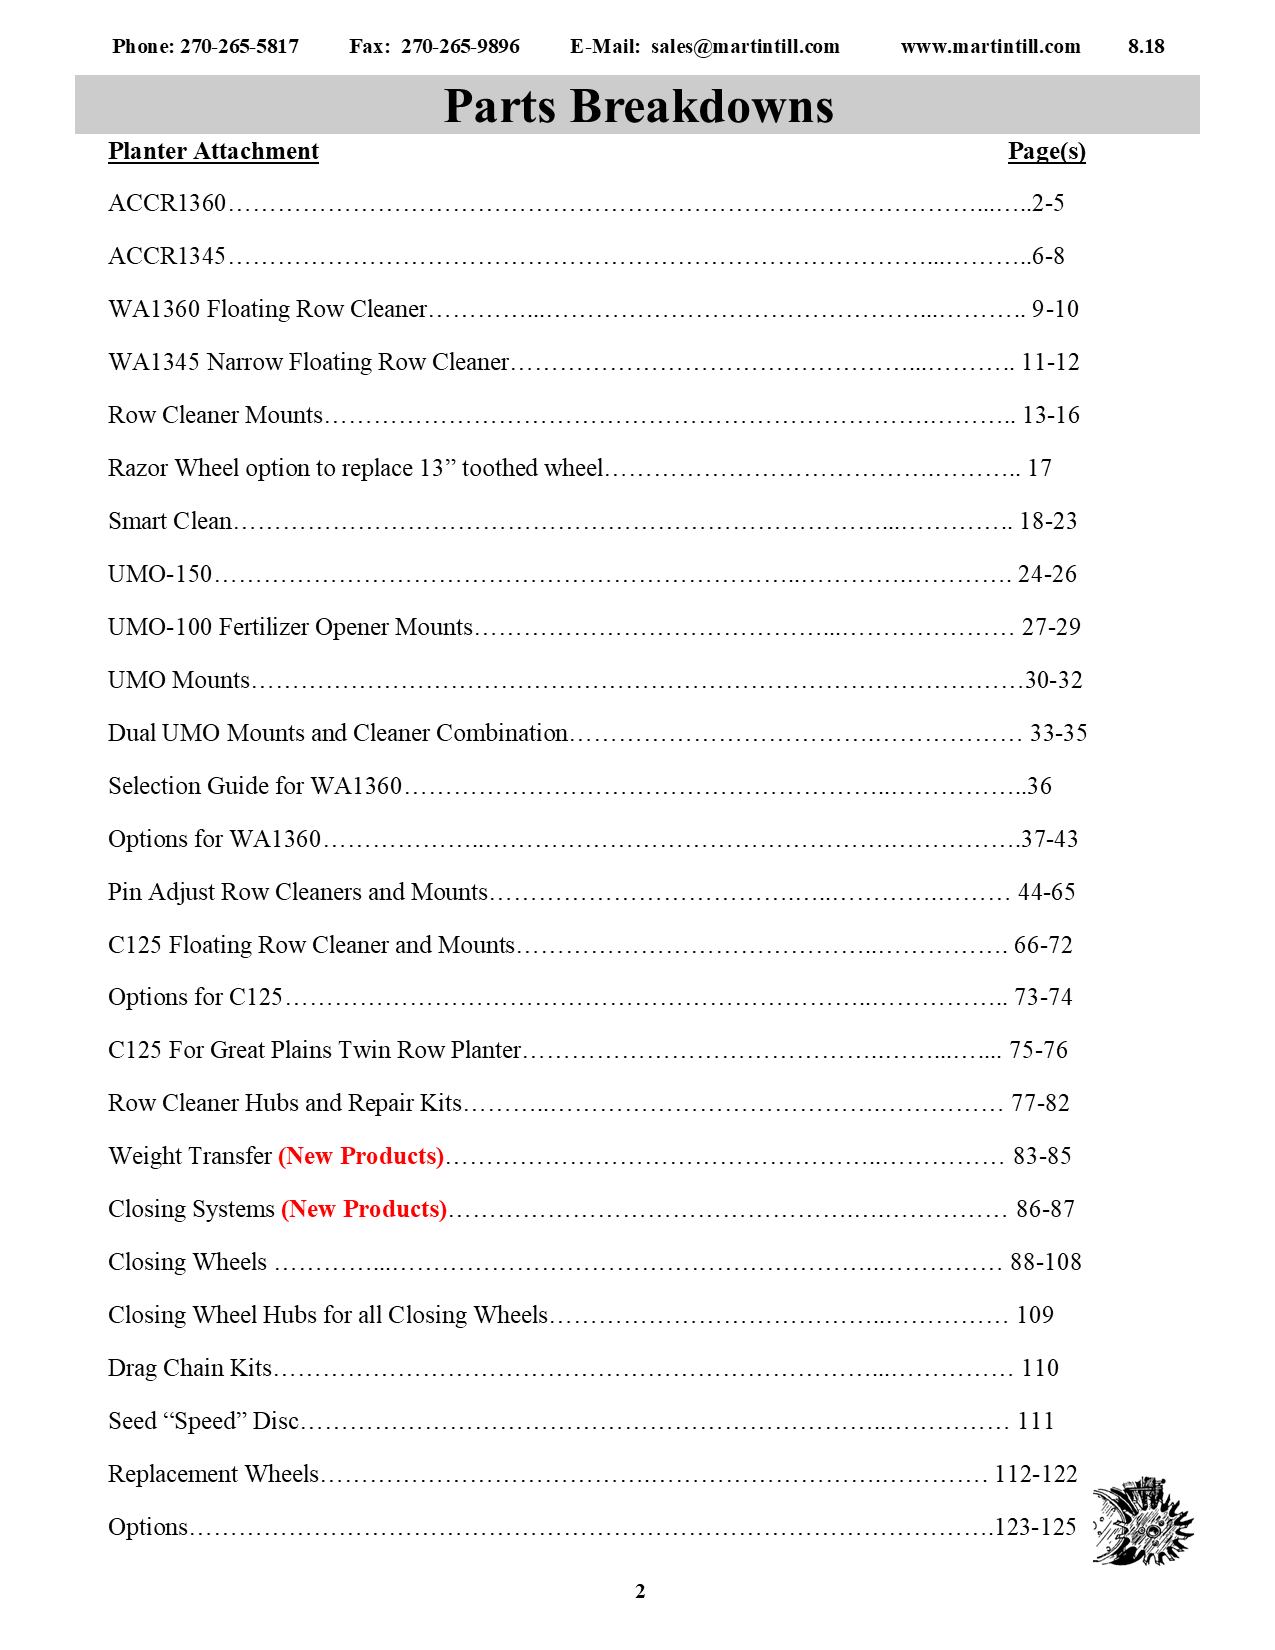 2020-table-of-contents-view-png.png